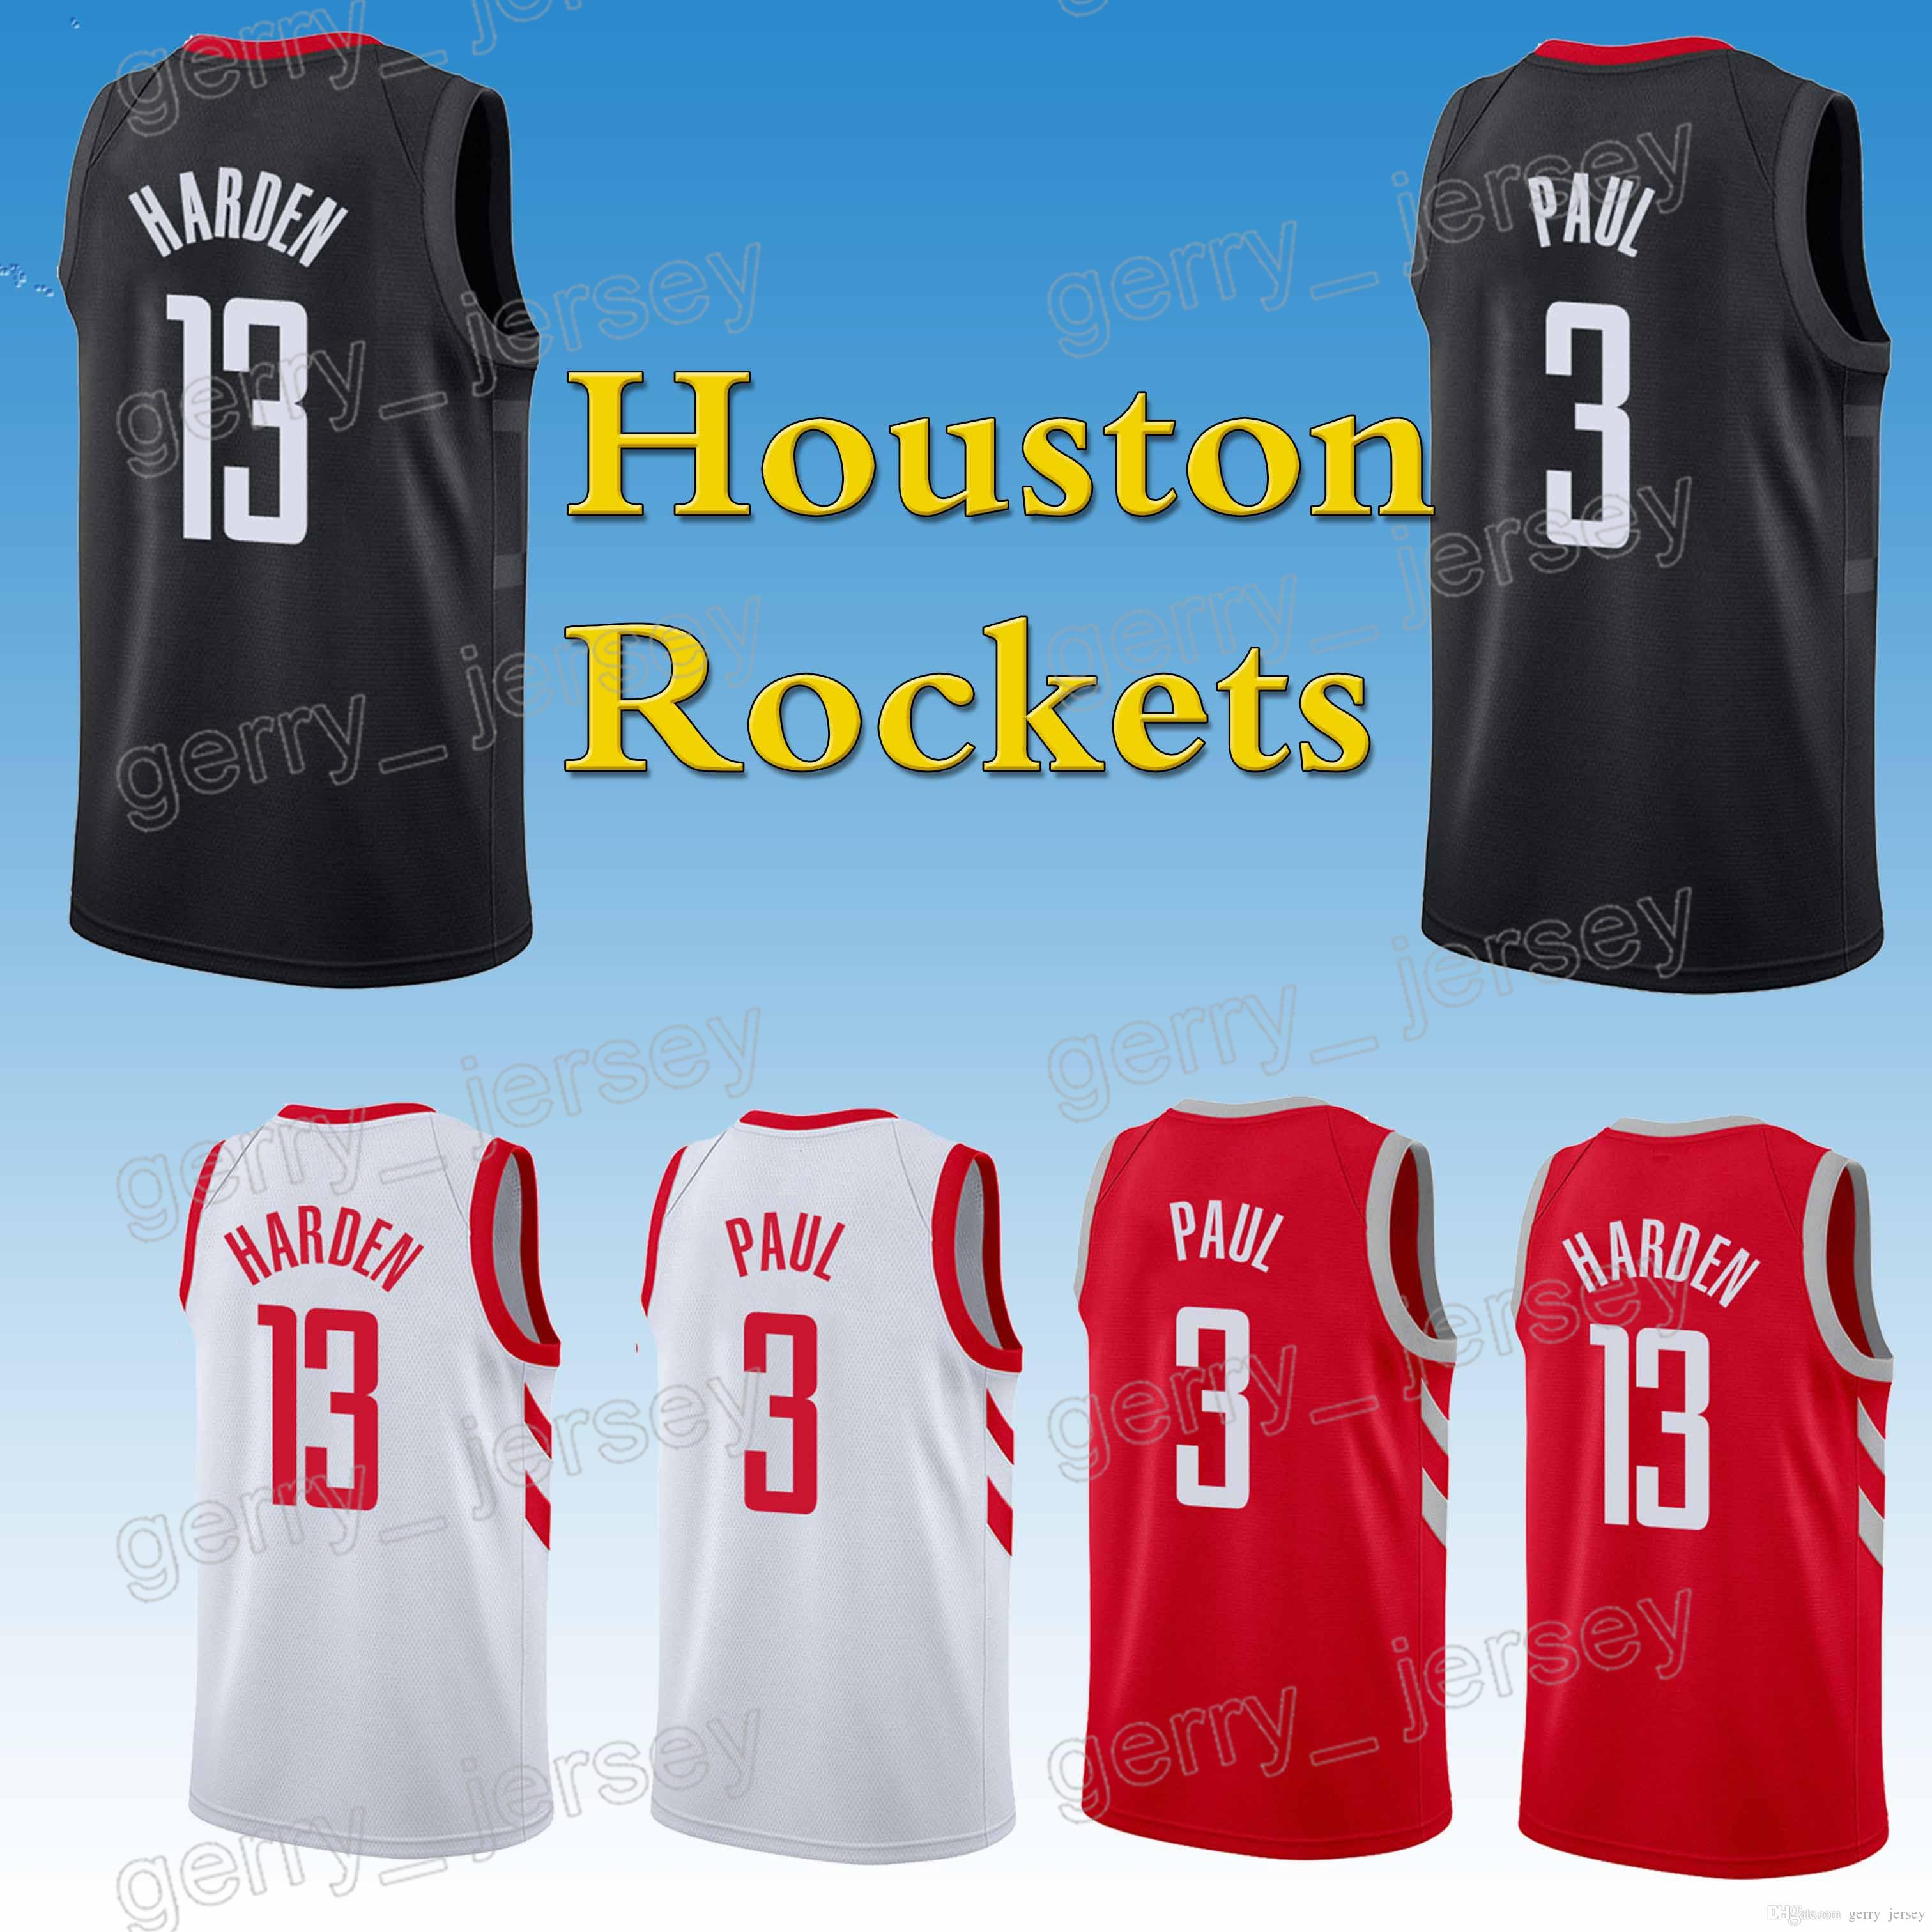 060c6566ba9 ... red road c4ebb 83308  australia houston rockets jerseys 3 chris paul 13  james harden high quality free shopping new hot